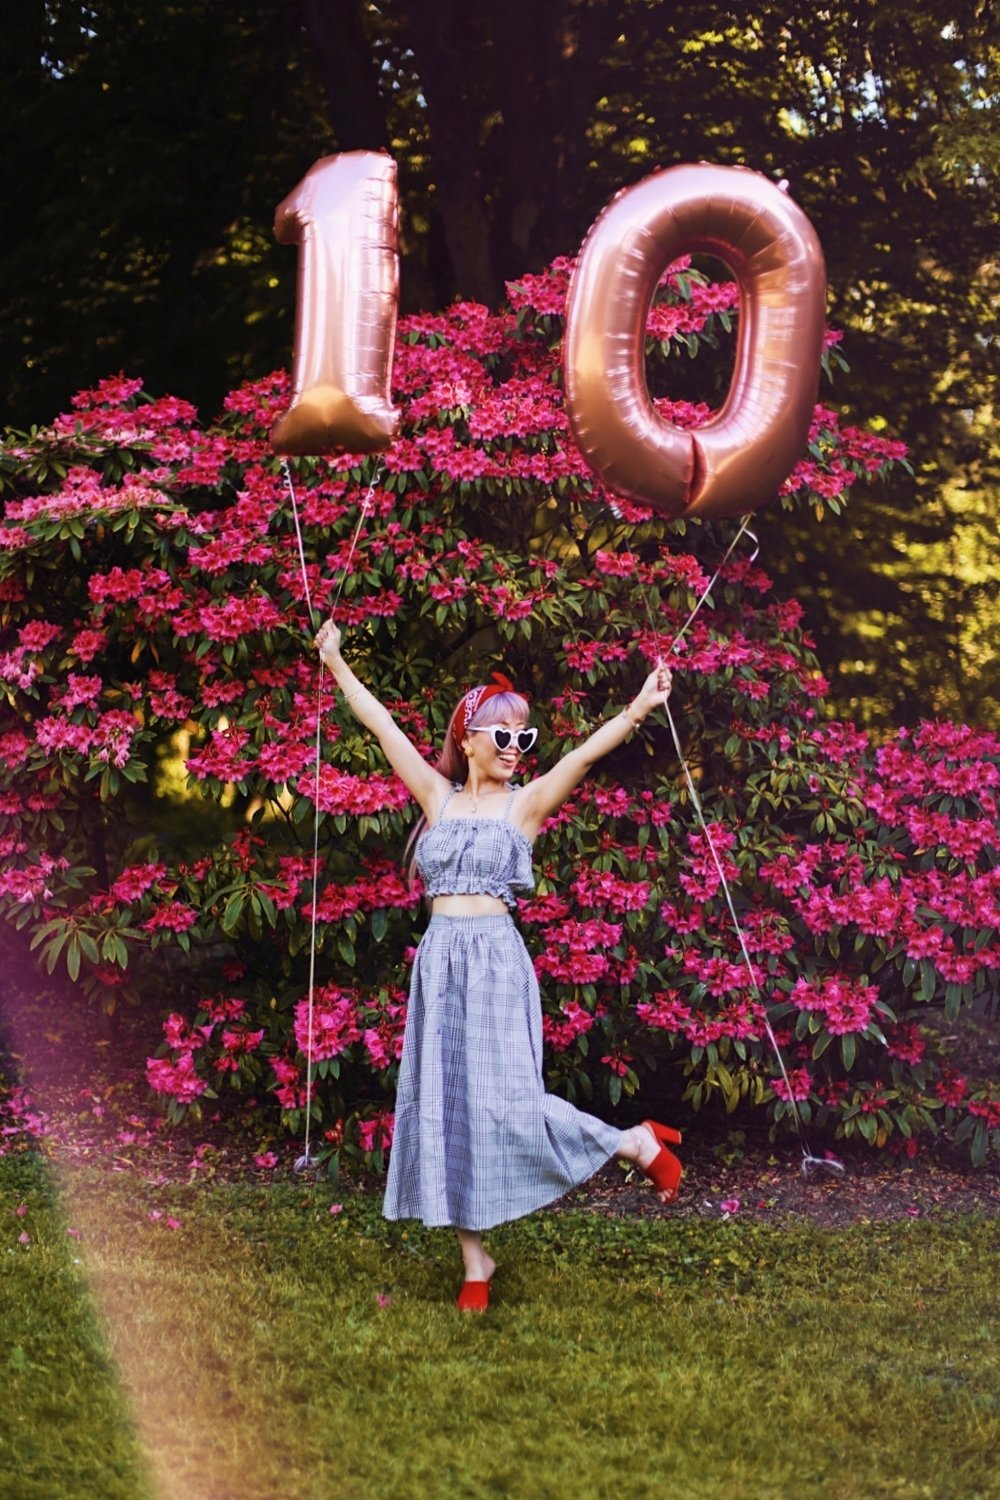 Aika's Love Closet-Seattle Style Life Style Blogger-Japanese-10 Year Anniversary-living in America-what I've learned from Living Abroad-life lessons-pink hair-zero uv heart sunglasses-rose gold balloons-smile 11